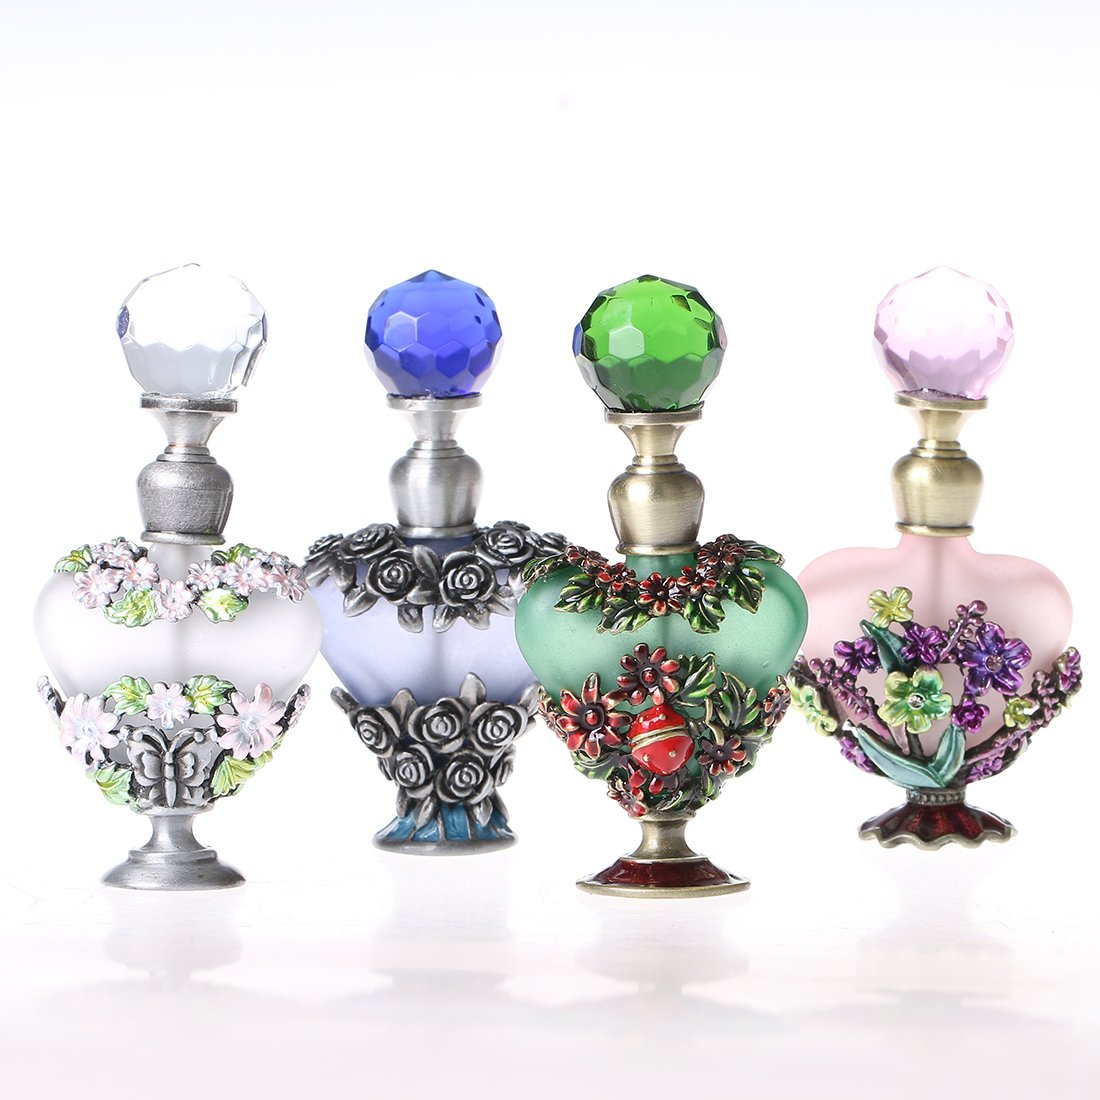 H&D Vintage Magical Violet Refillable Empty Crystal Perfume Bottle Handmade Home Decor Lady Wedding Gift 4